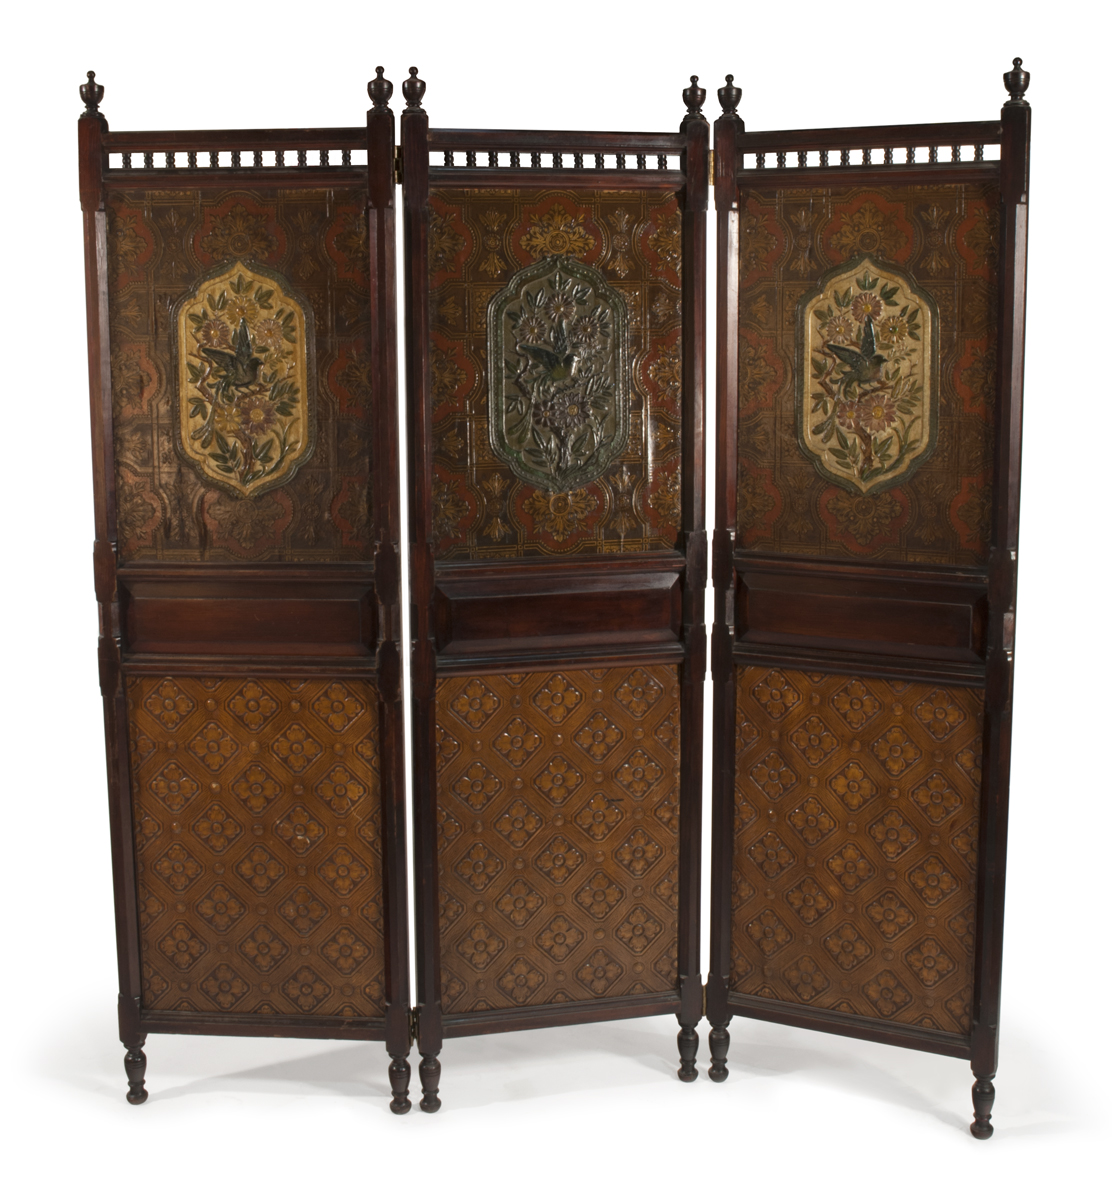 Three Panel Screen